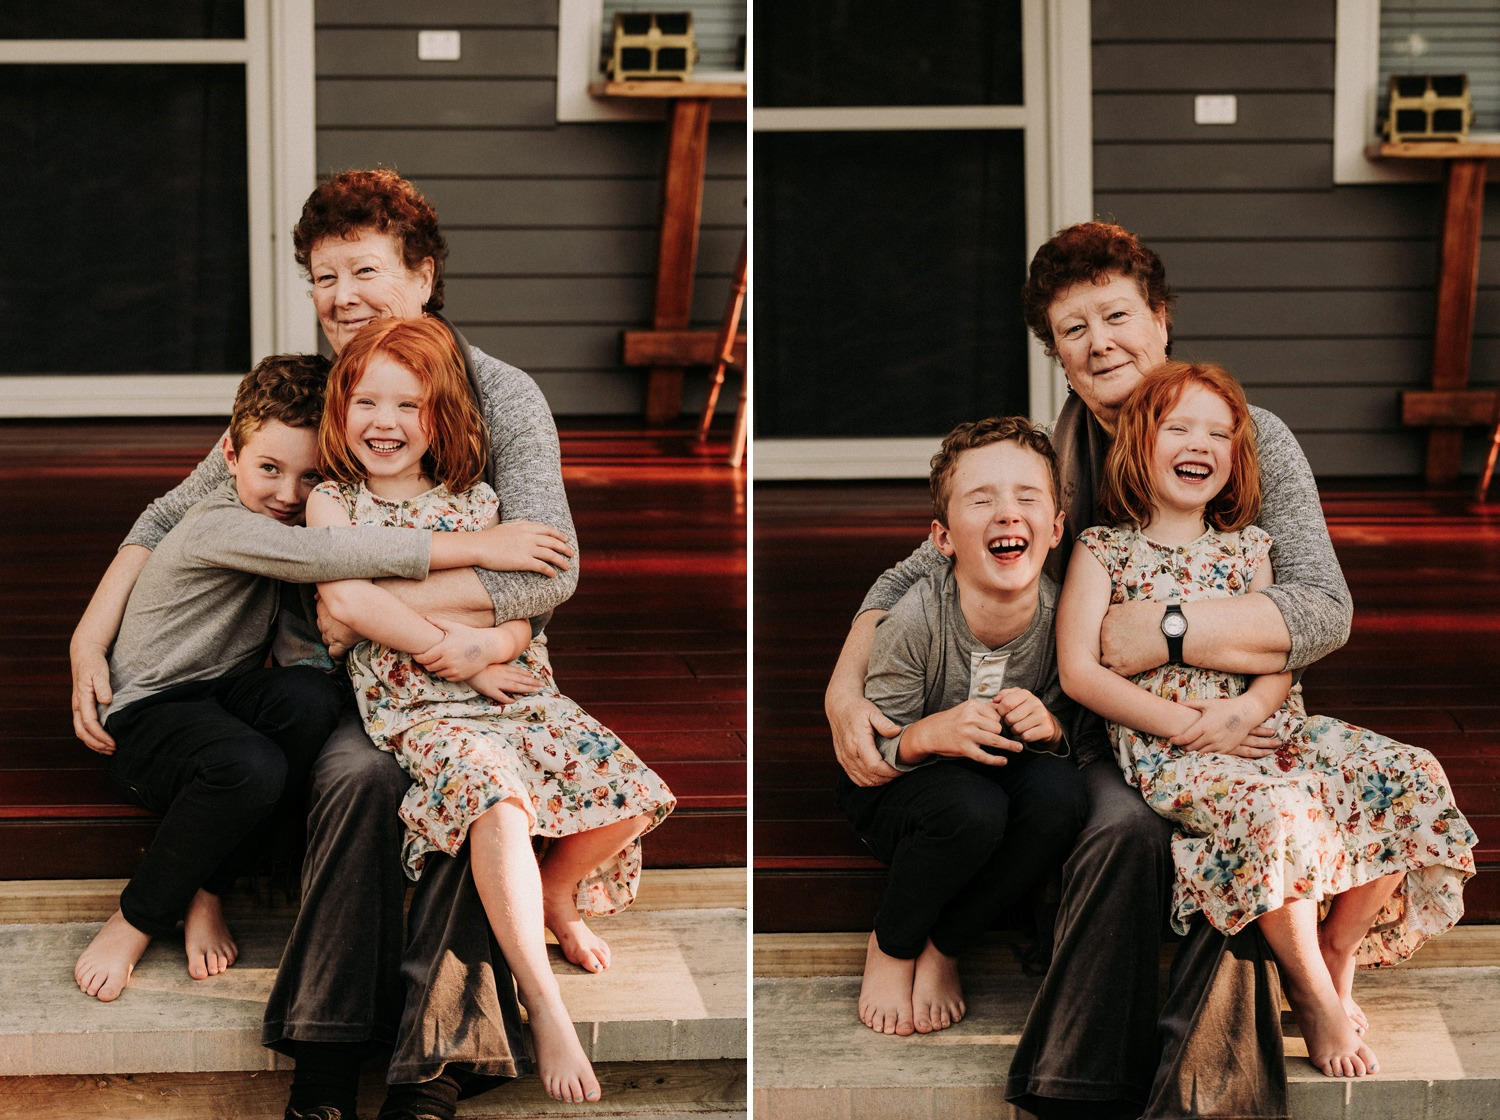 Candid family portraits in Byron Bay home